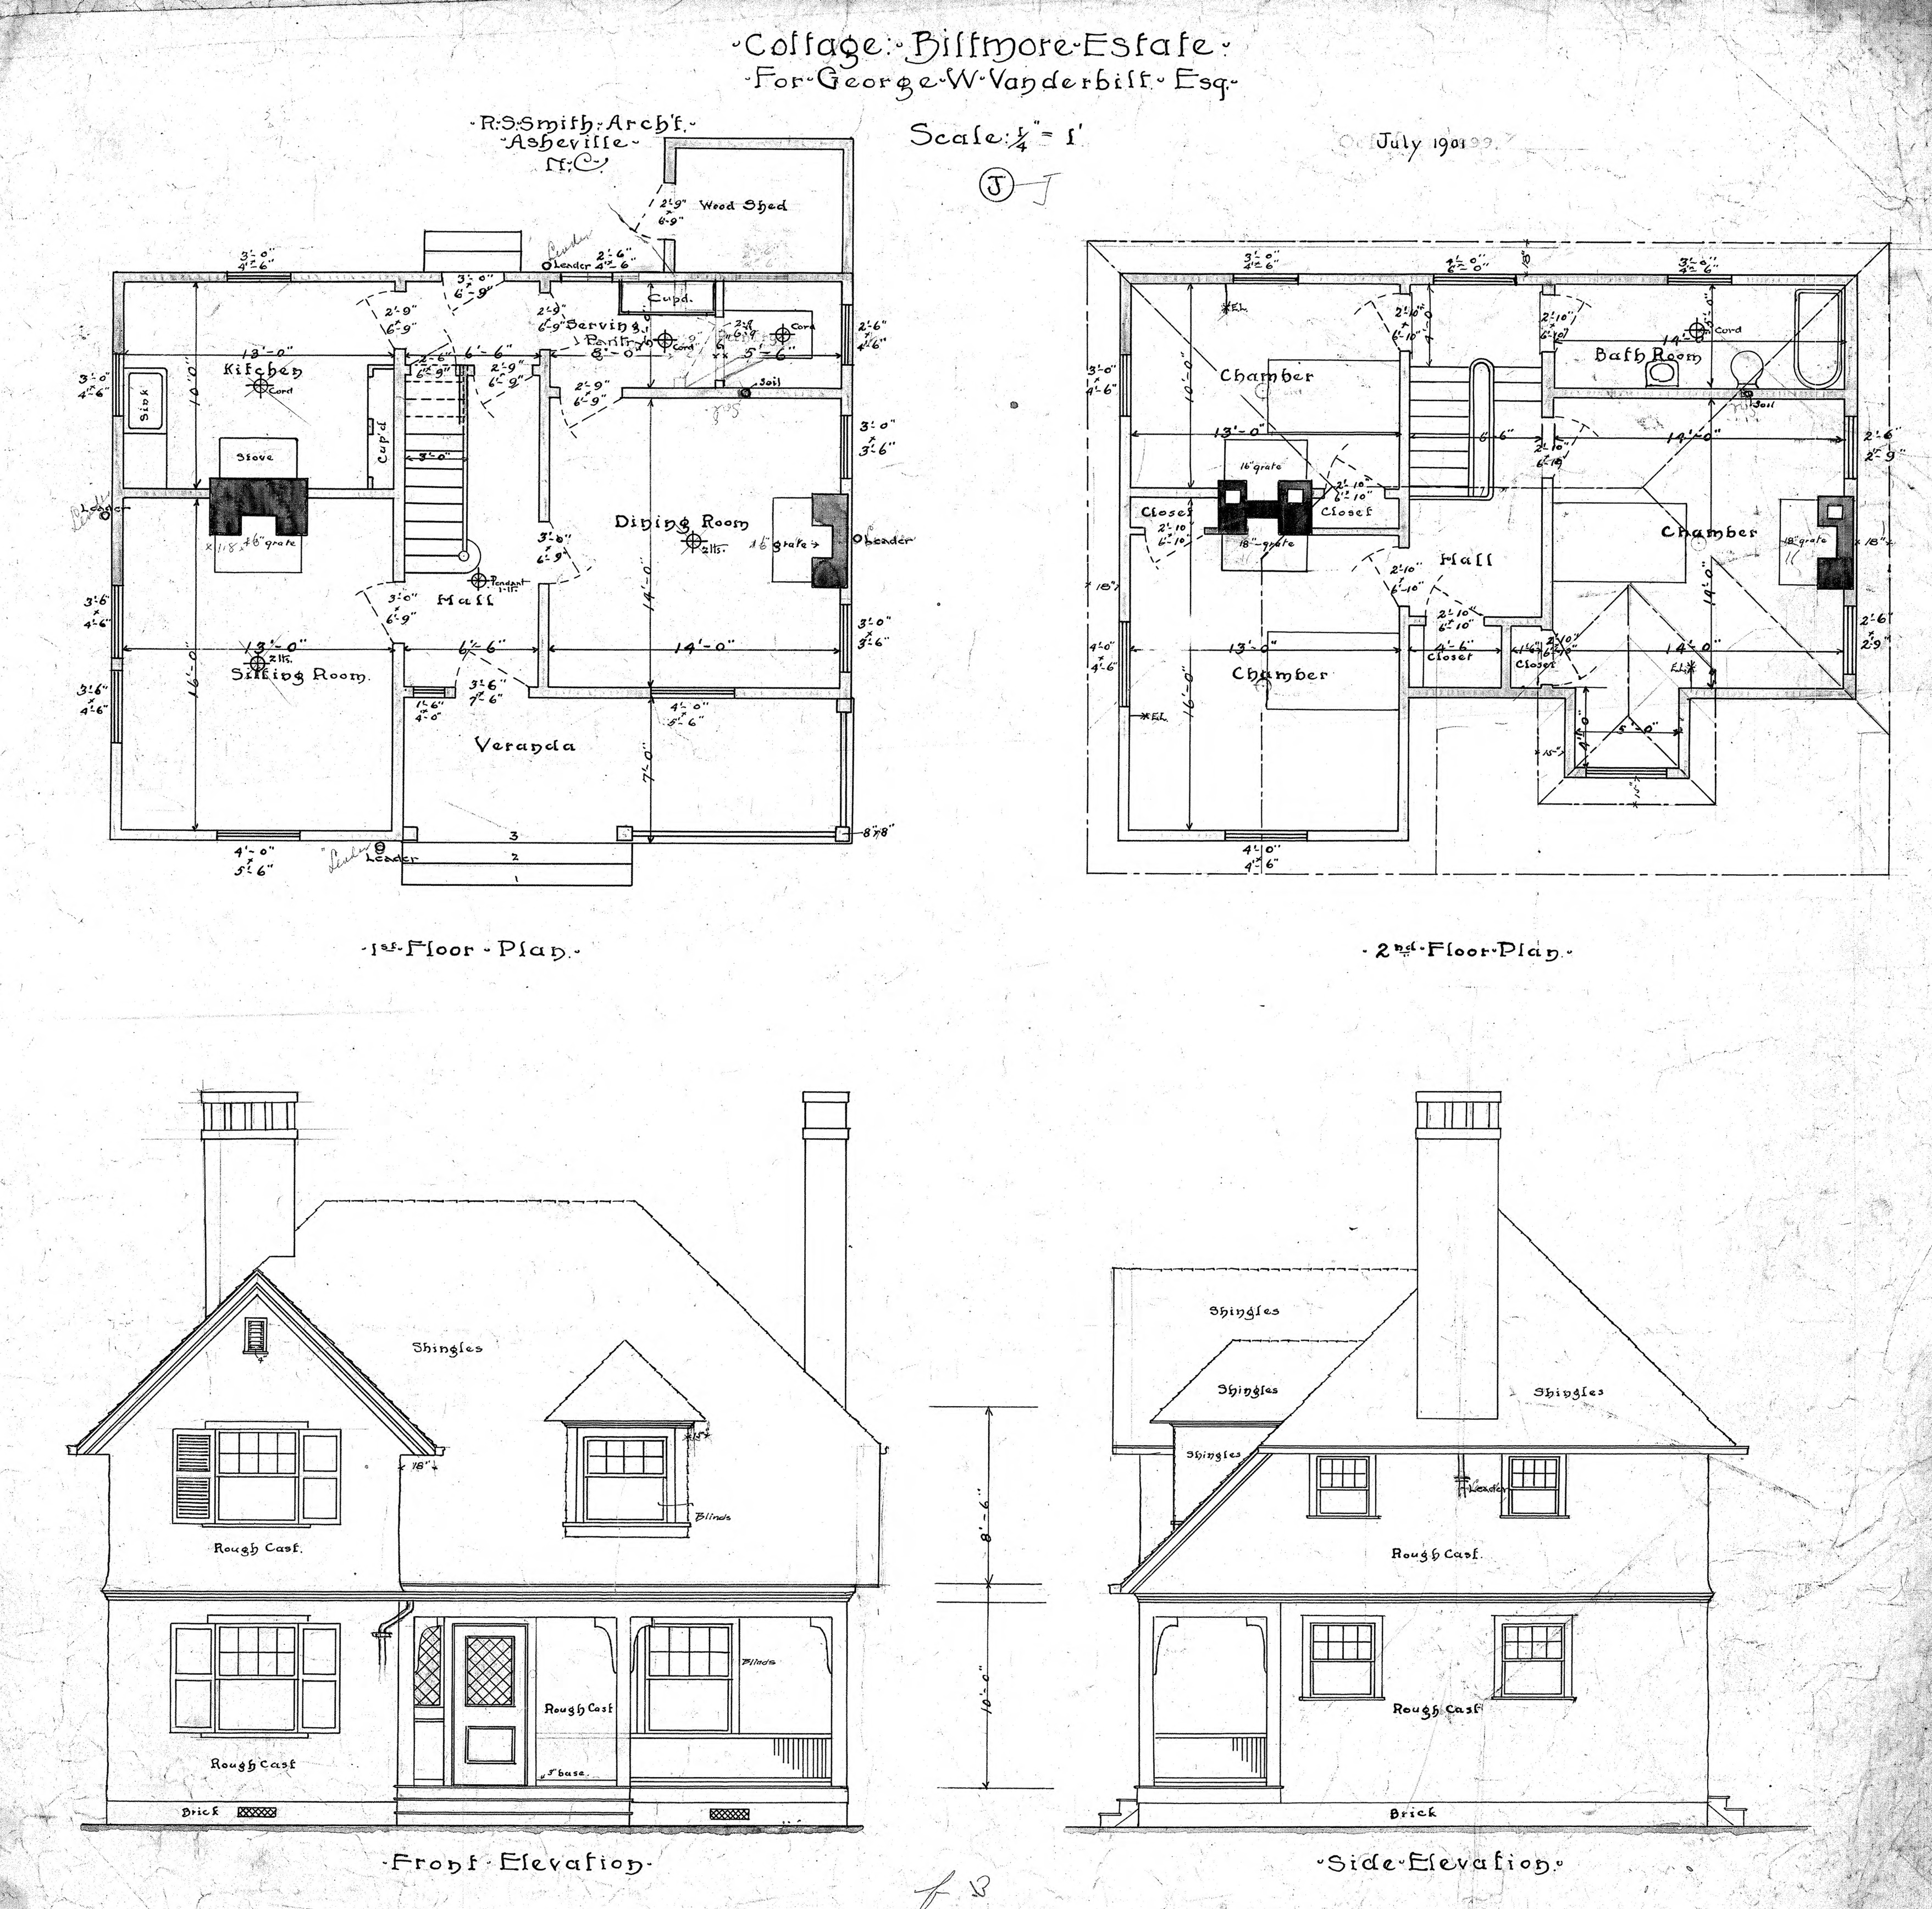 Front Elevation Floor Plan : Cottage quot j for geo w vanderbilt esq first and second